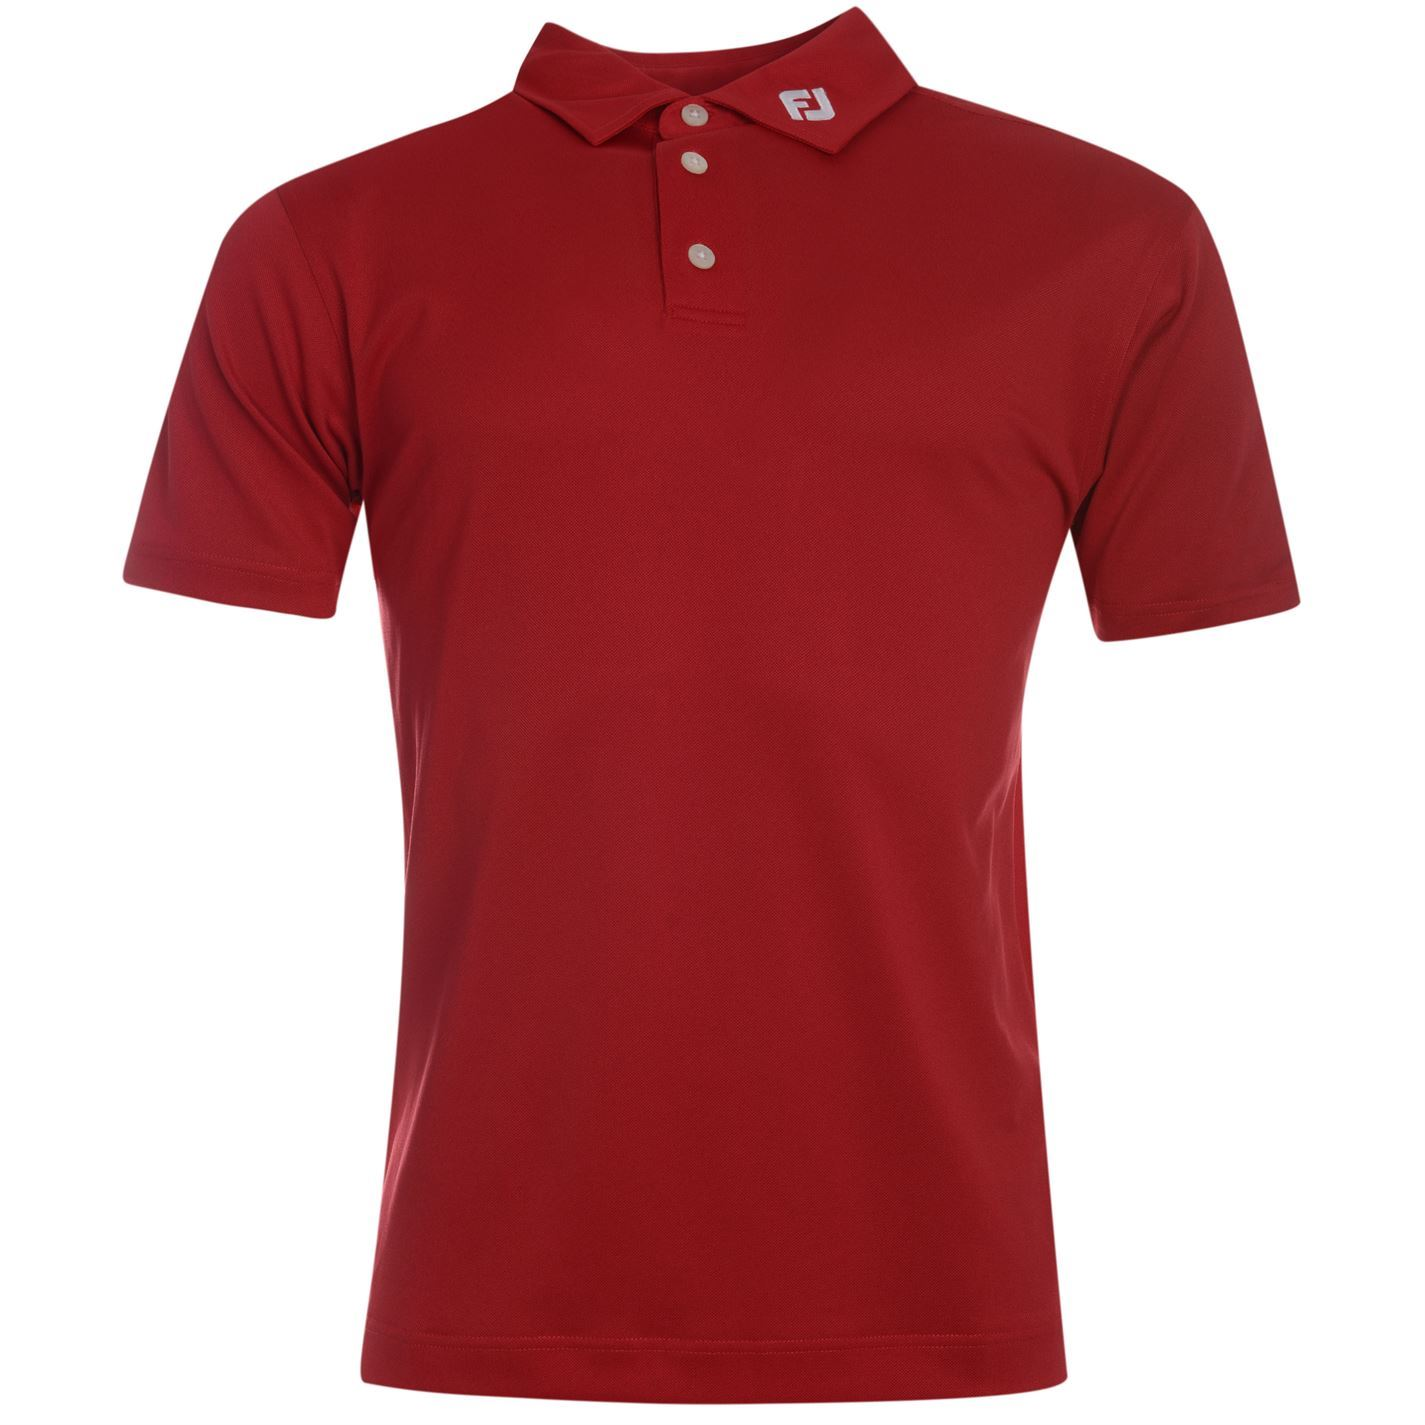 Footjoy solid golf polo shirt mens red top t shirt shirt for Best polo t shirts for men